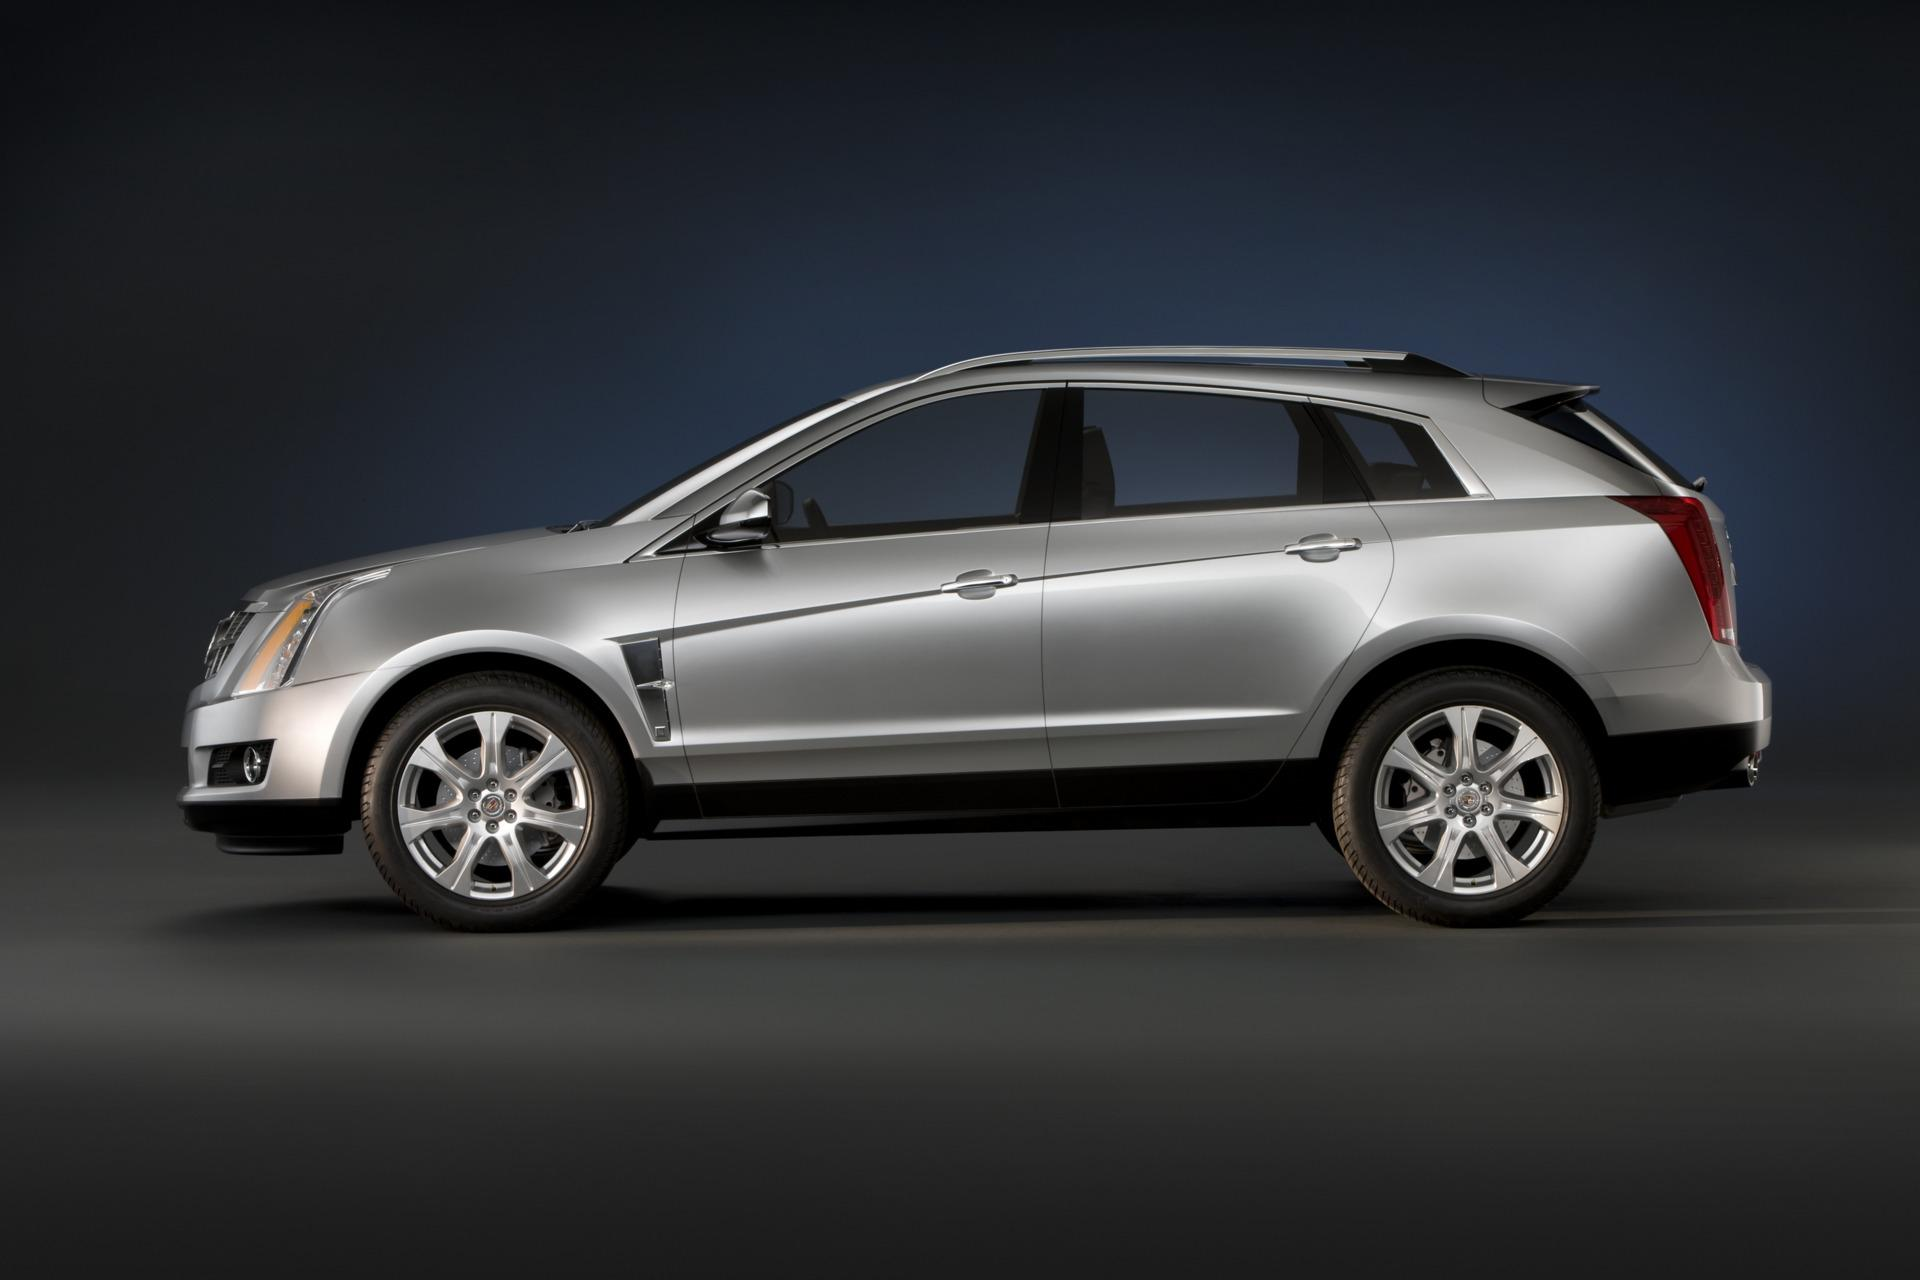 2010 Cadillac Srx Crossover News And Information